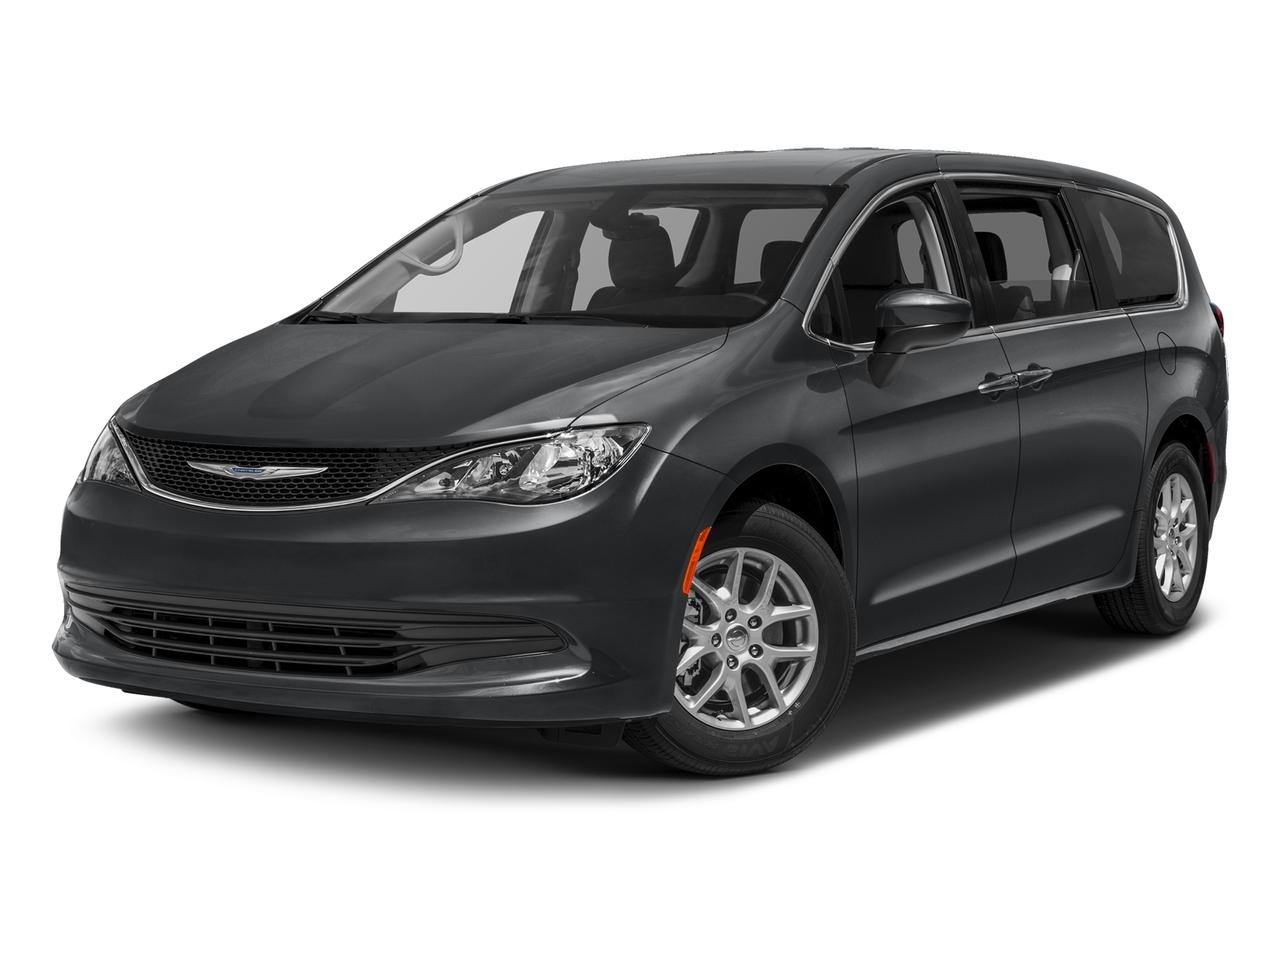 2017 Chrysler Pacifica Vehicle Photo in SOUTH PORTLAND, ME 04106-1997